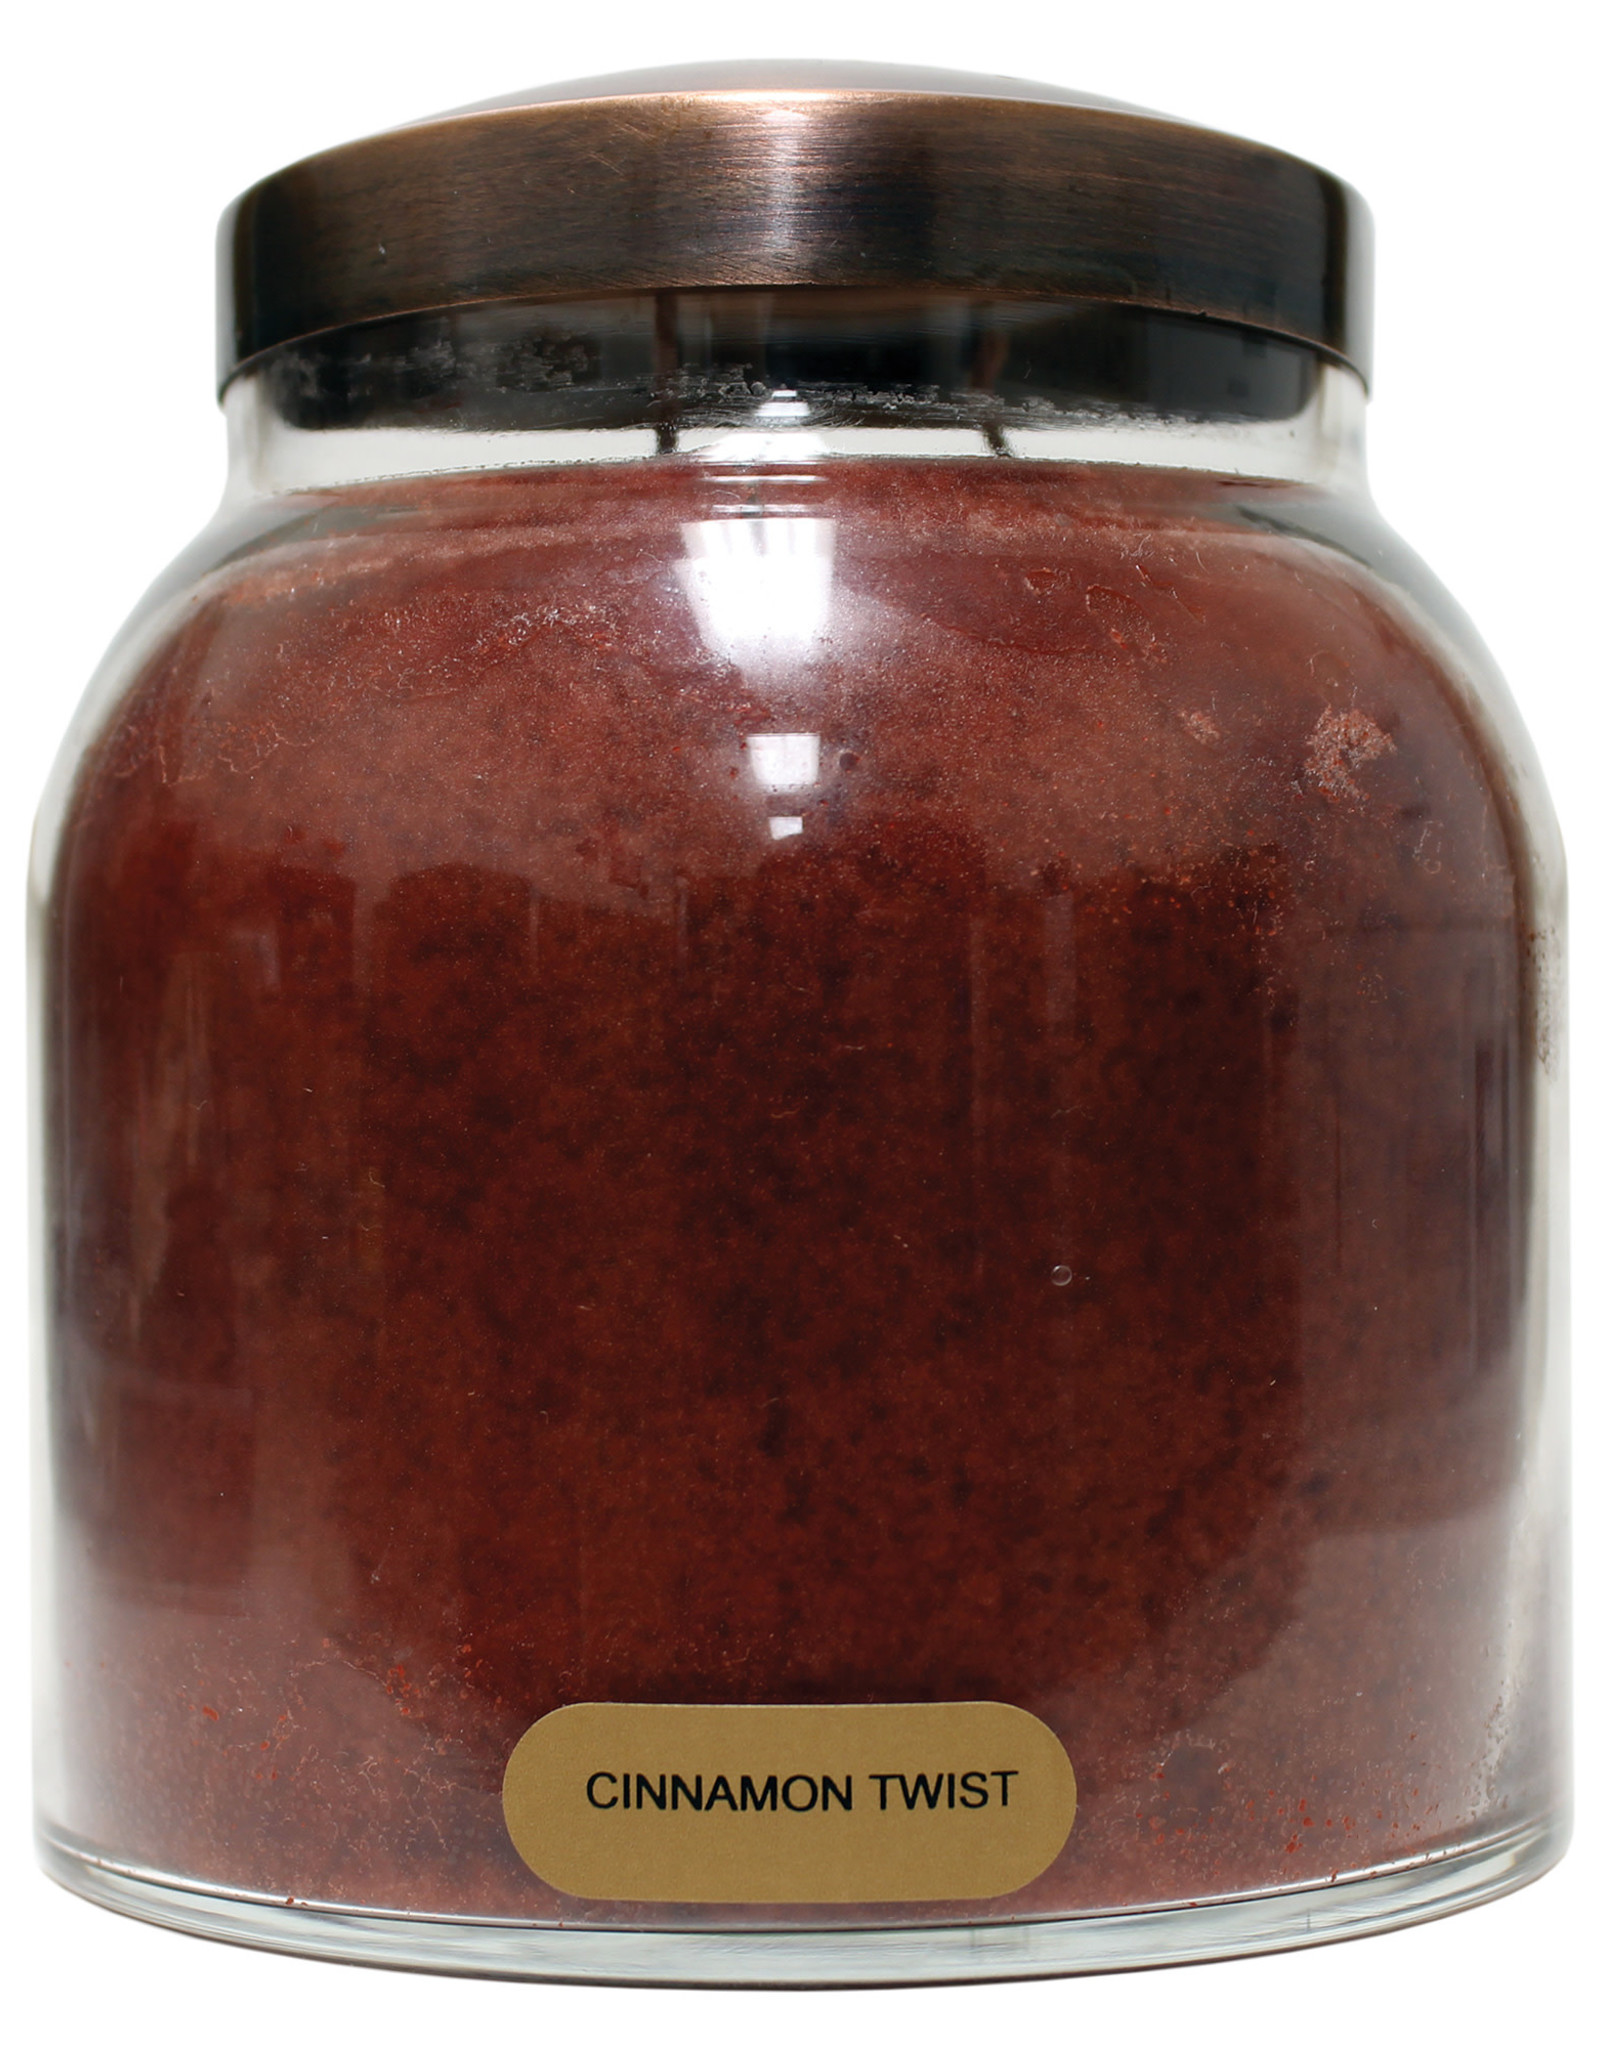 Keepers of the Light Candle - Cinnamon Twist - Papa 34 oz. - Copper Lid